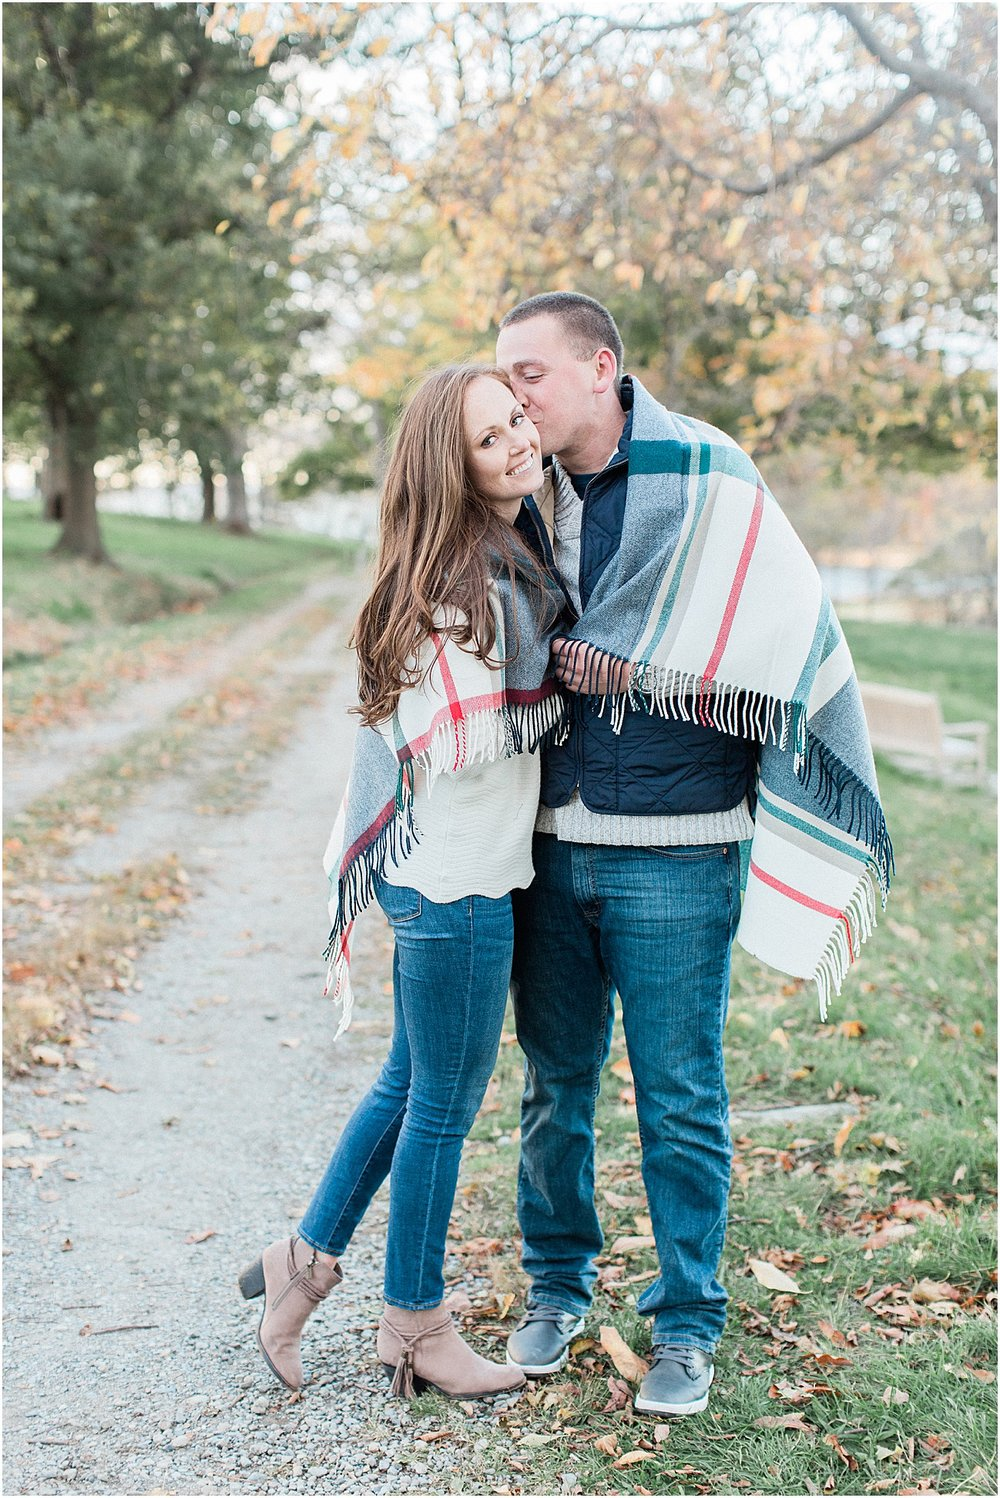 sarah_wille_engagement_worlds_end_hingham_fall_cape_cod_boston_wedding_photographer_meredith_jane_photography_photo_1745.jpg